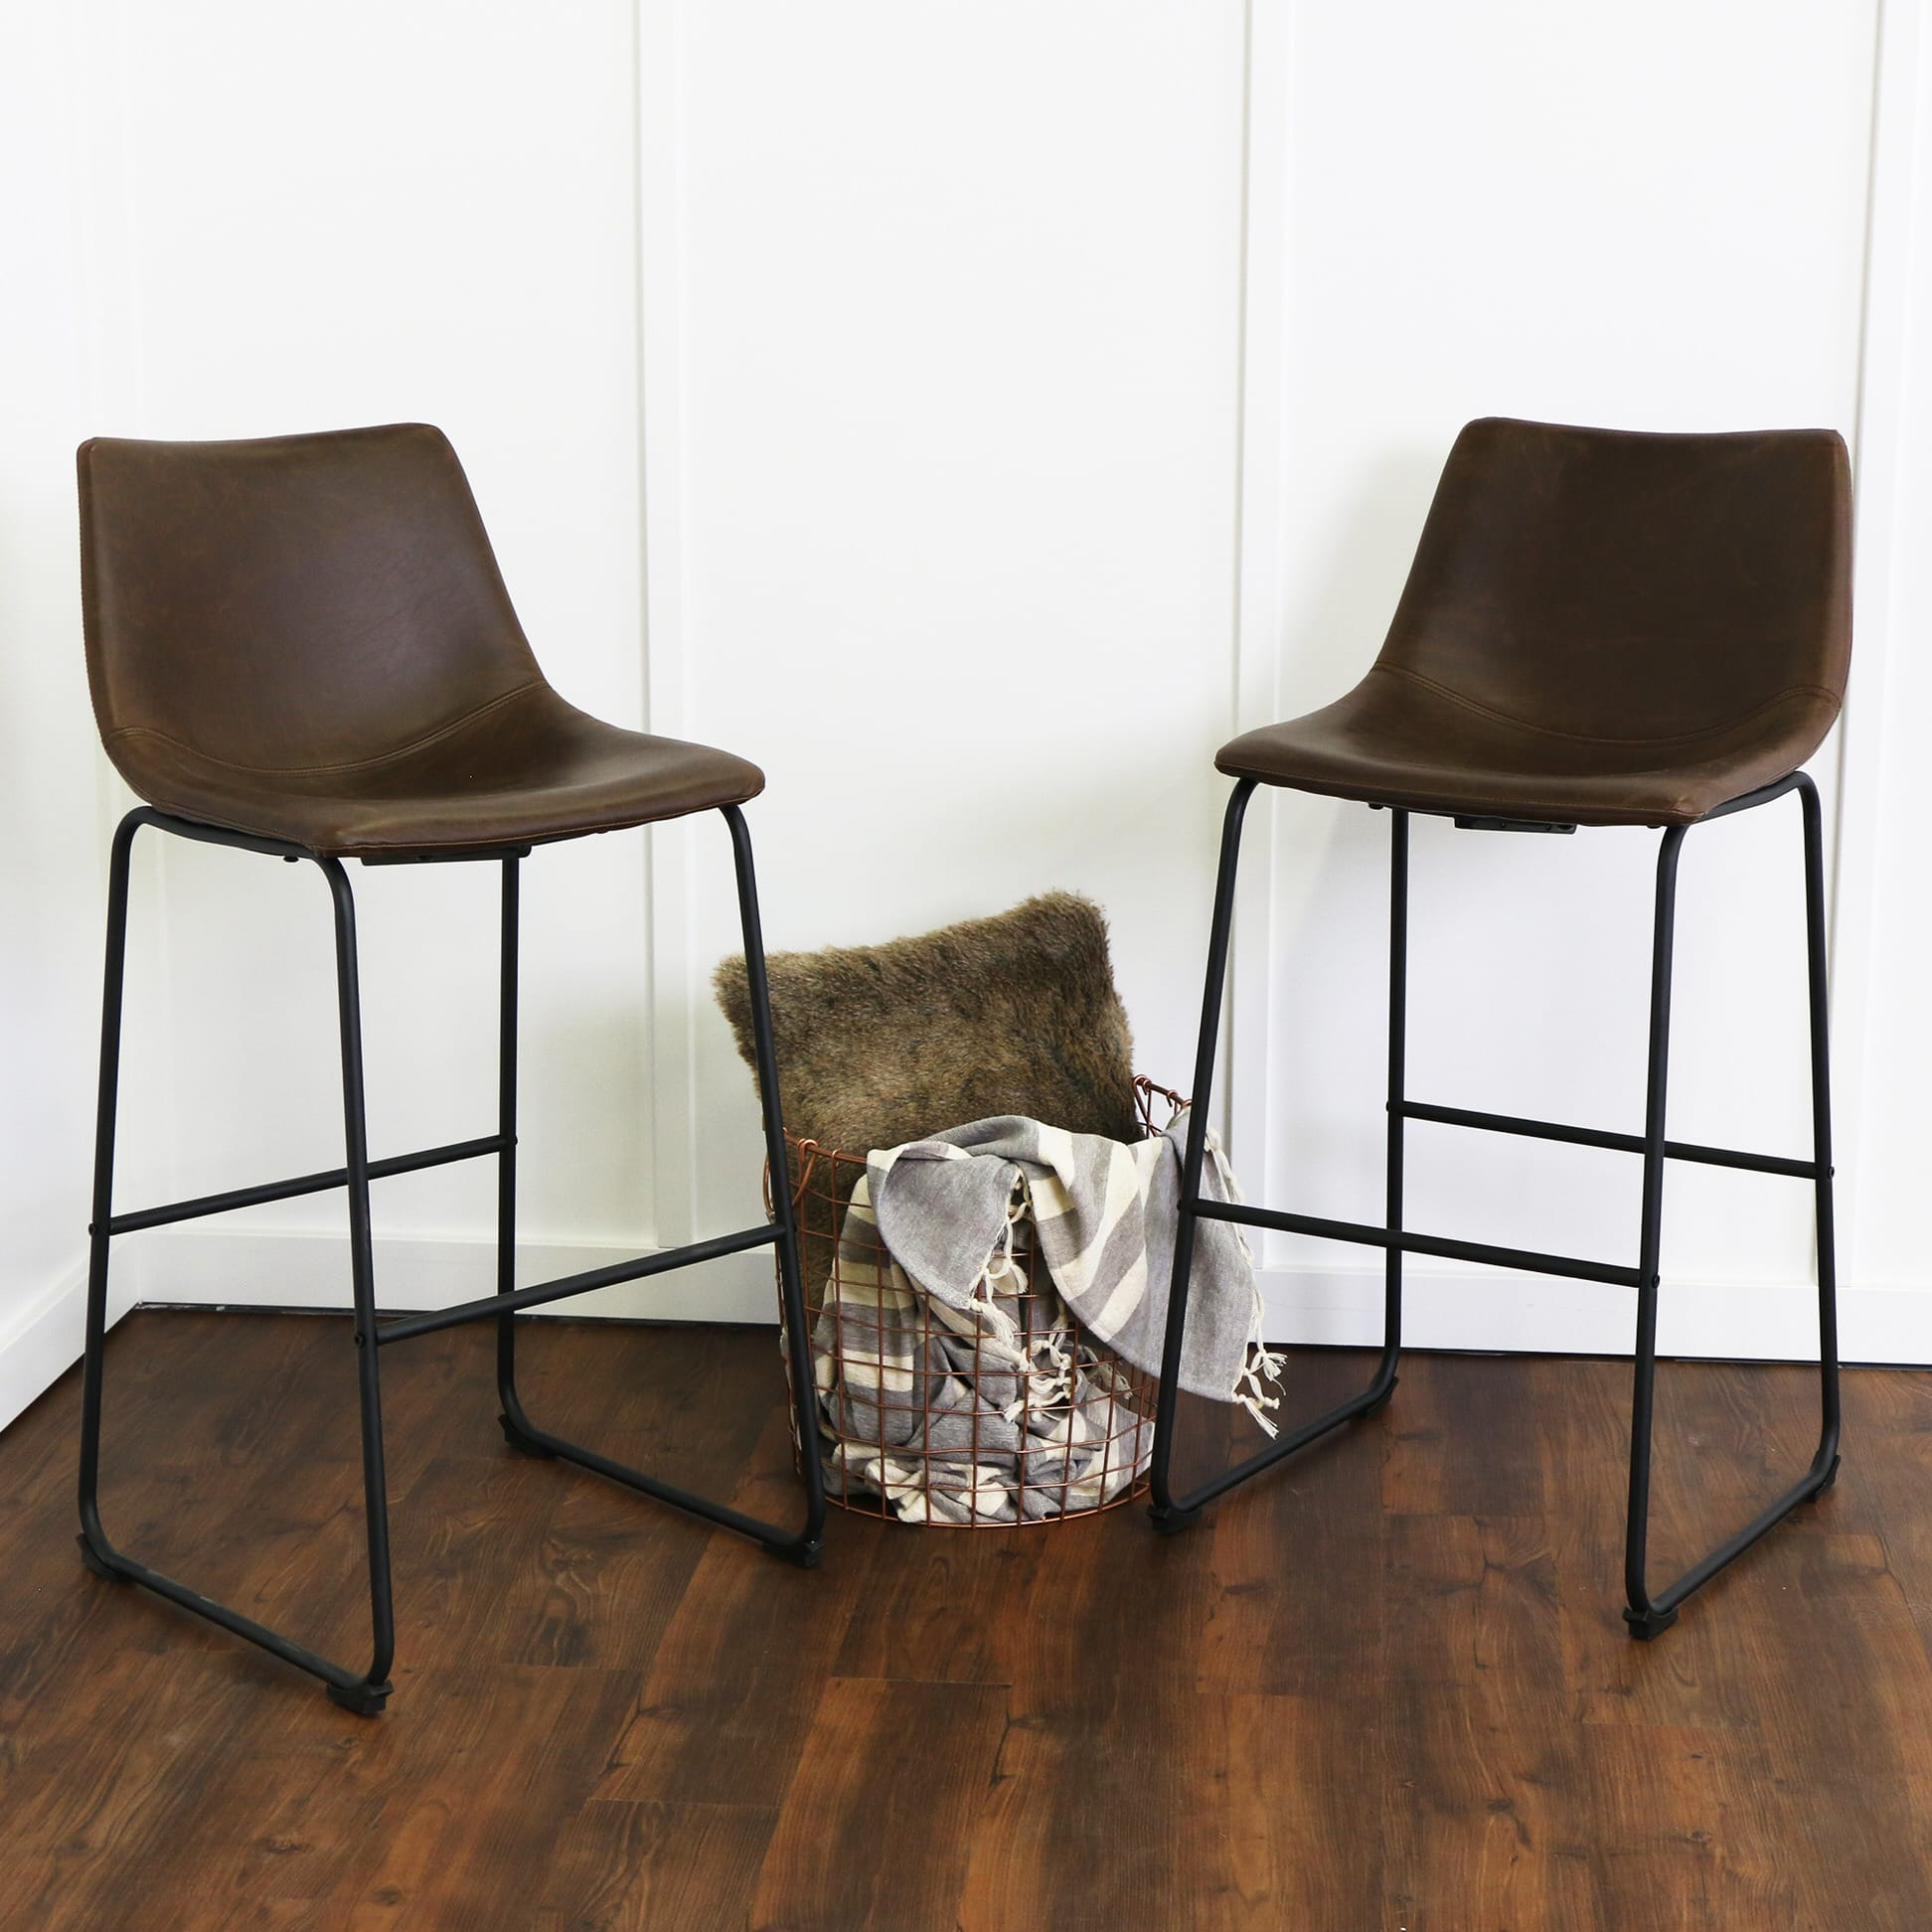 wasatch faux leather bar stools set of 2 brown by walker edison. Black Bedroom Furniture Sets. Home Design Ideas